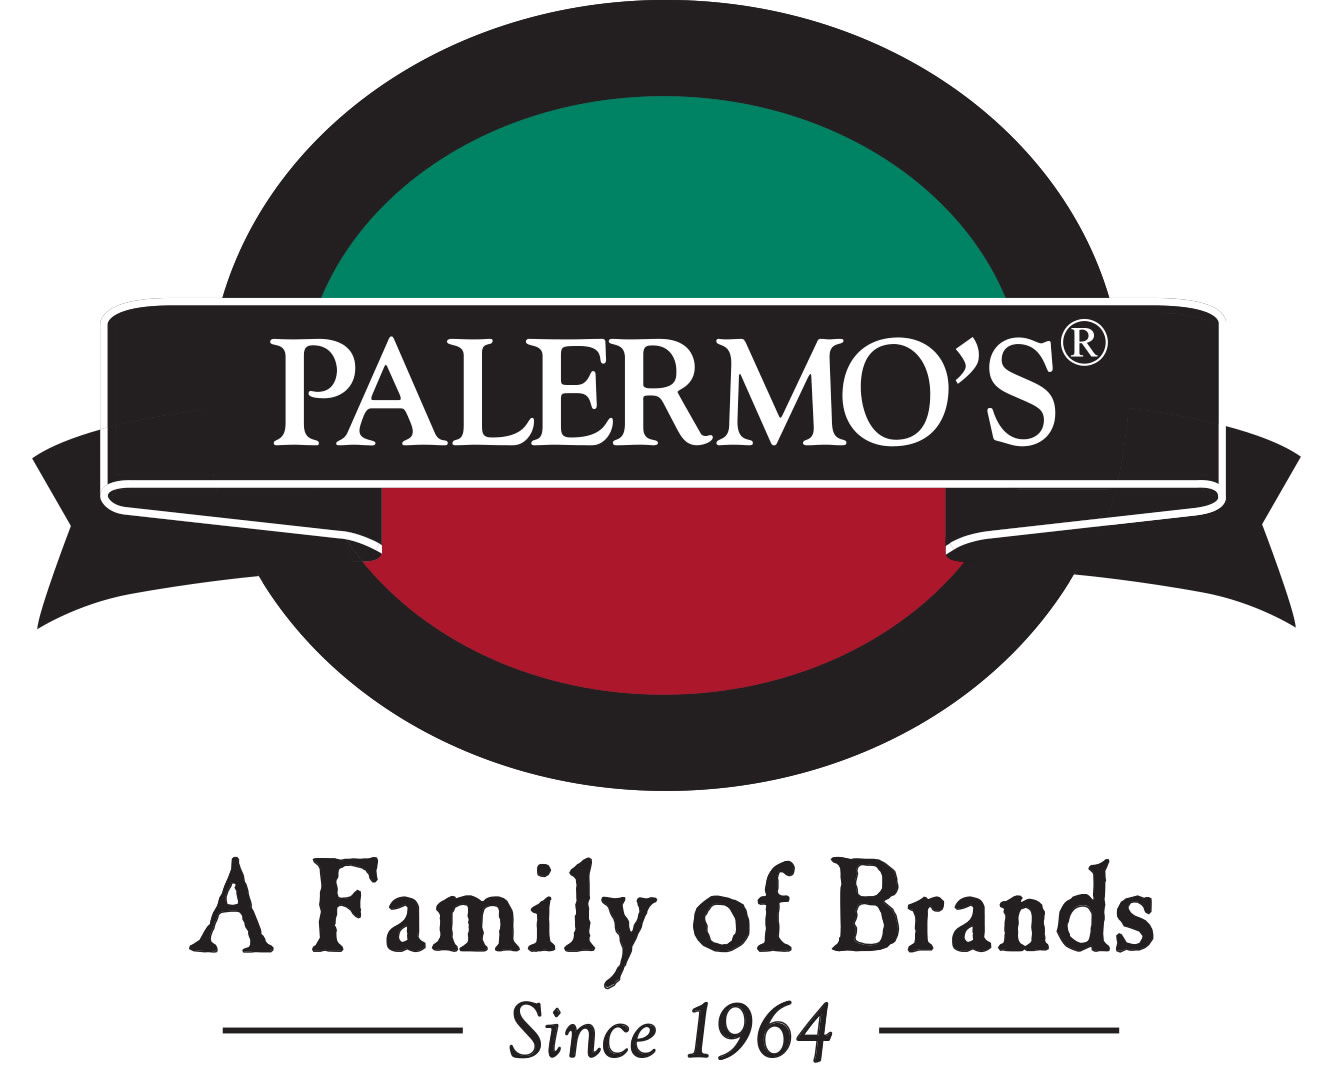 Palermo's - A Family of Brands